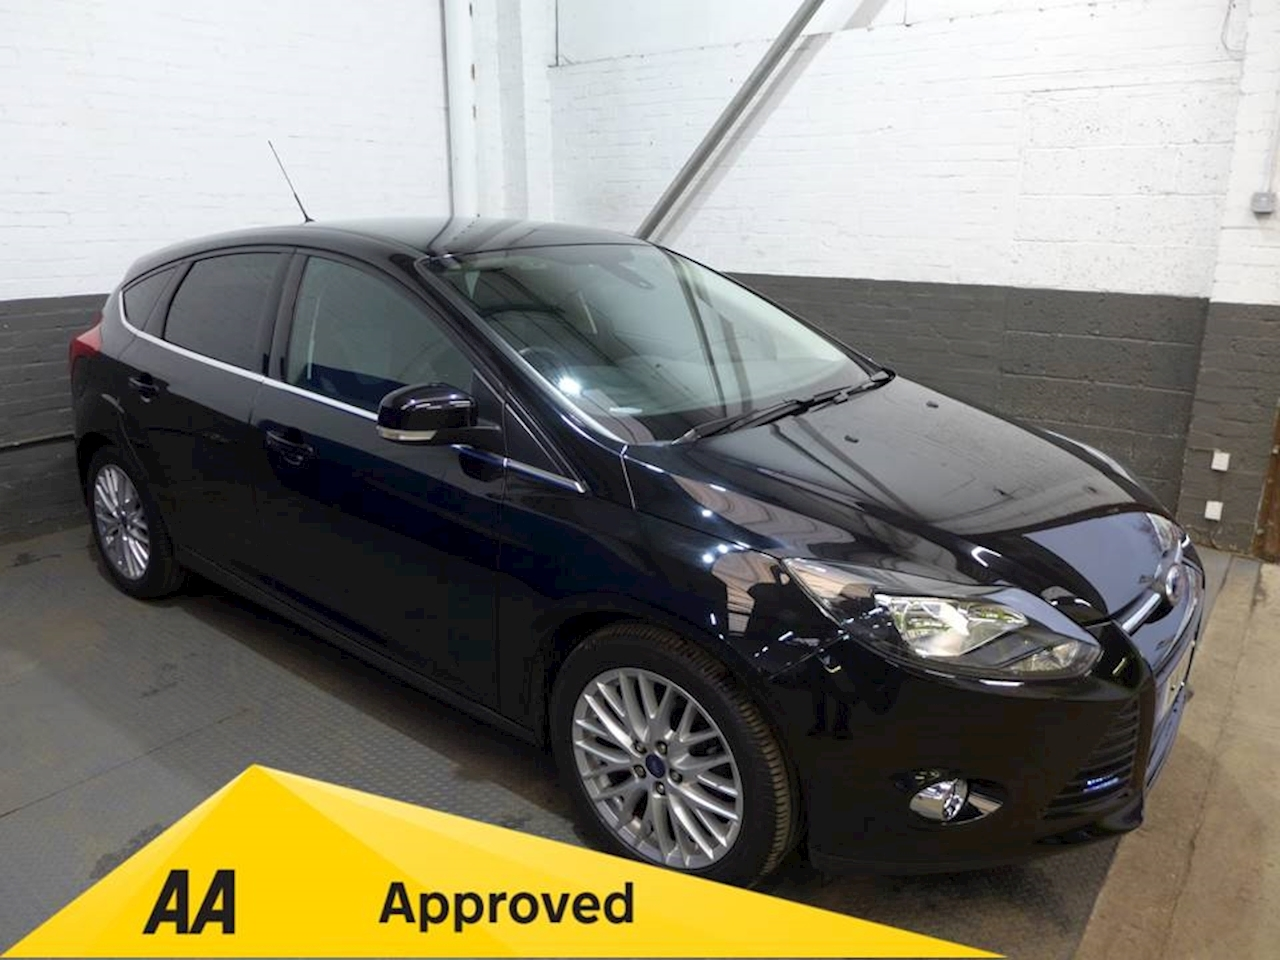 Focus Zetec Navigator Hatchback 1.6 Manual Petrol